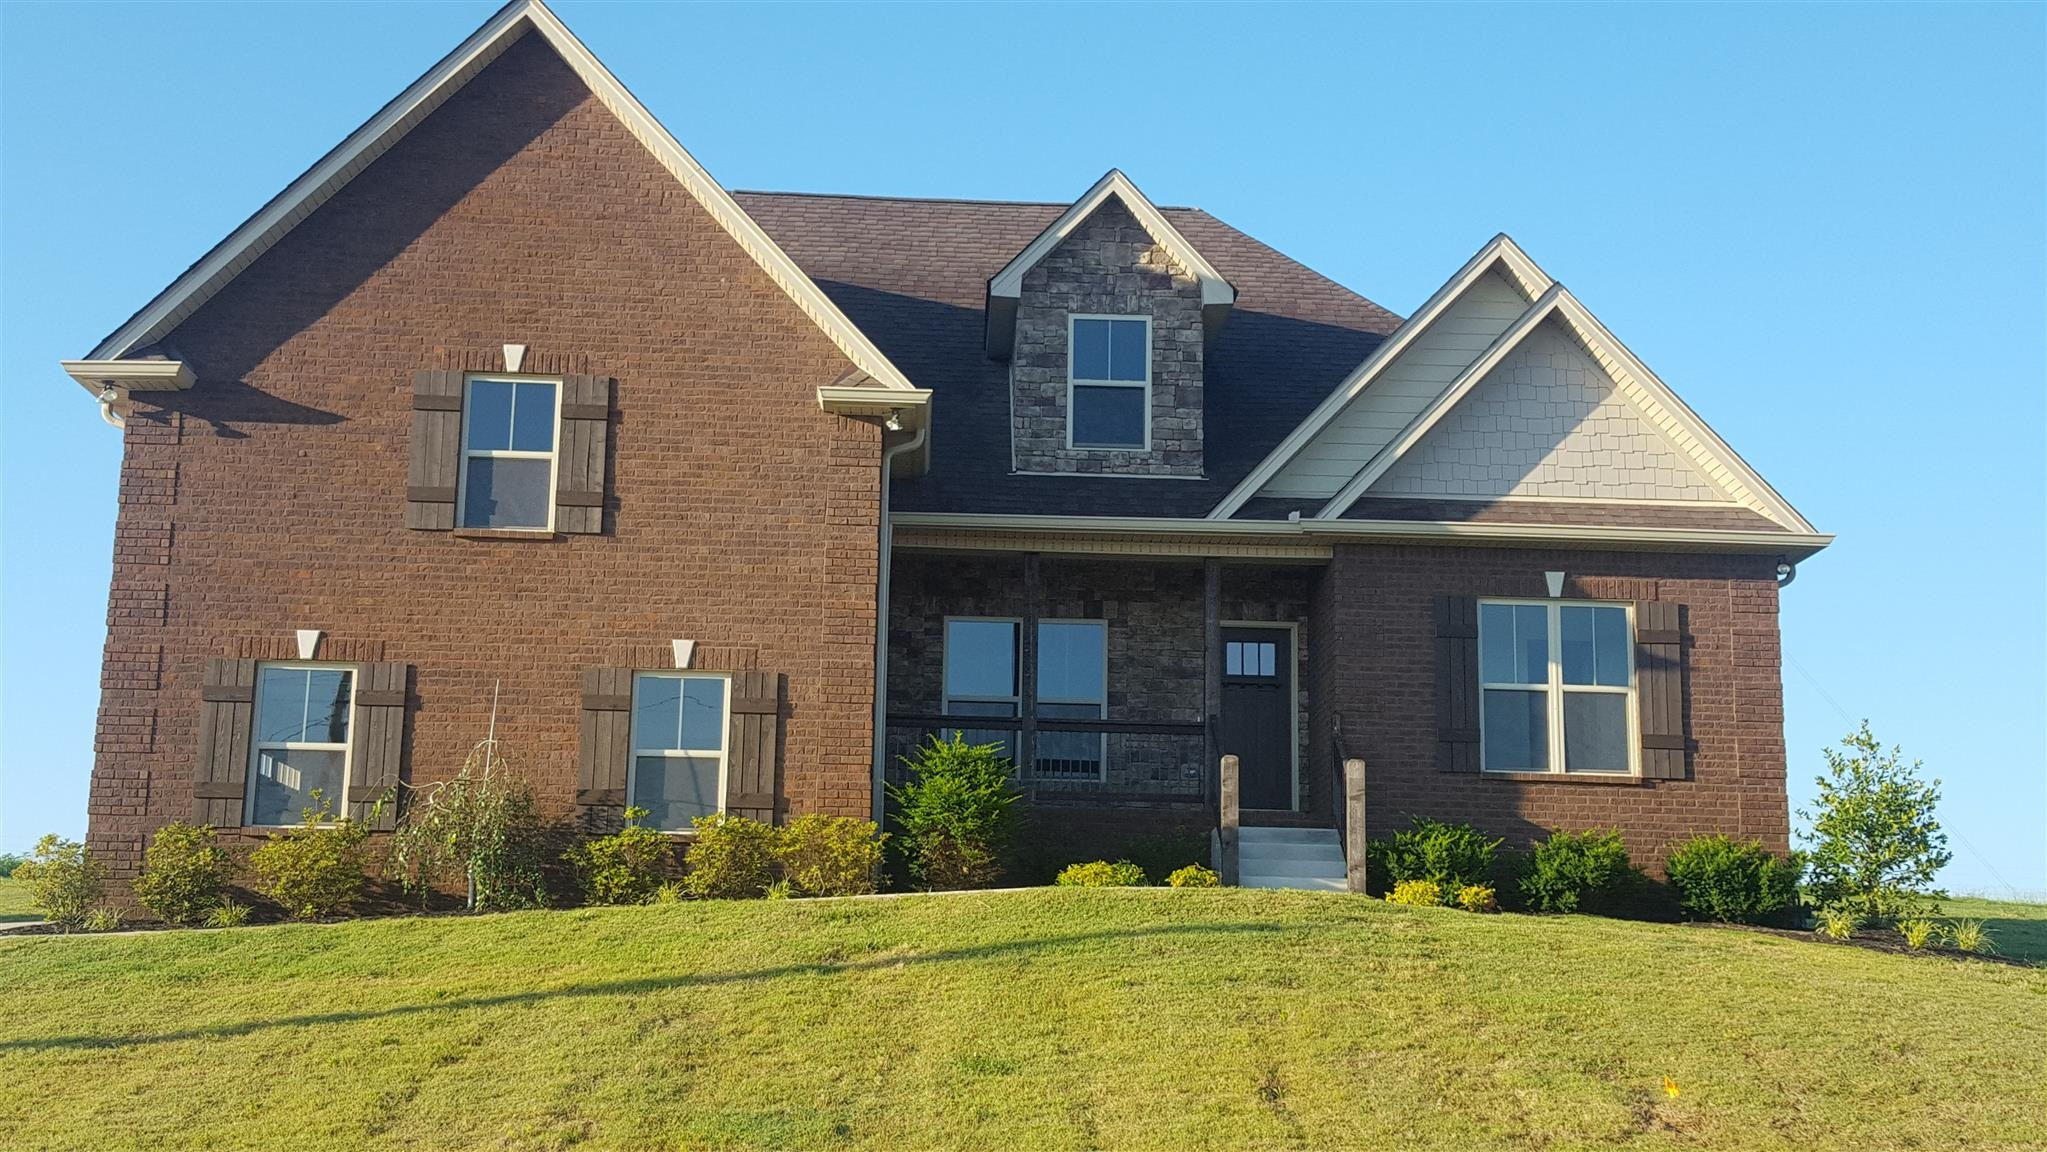 County Home Luton House For Sale